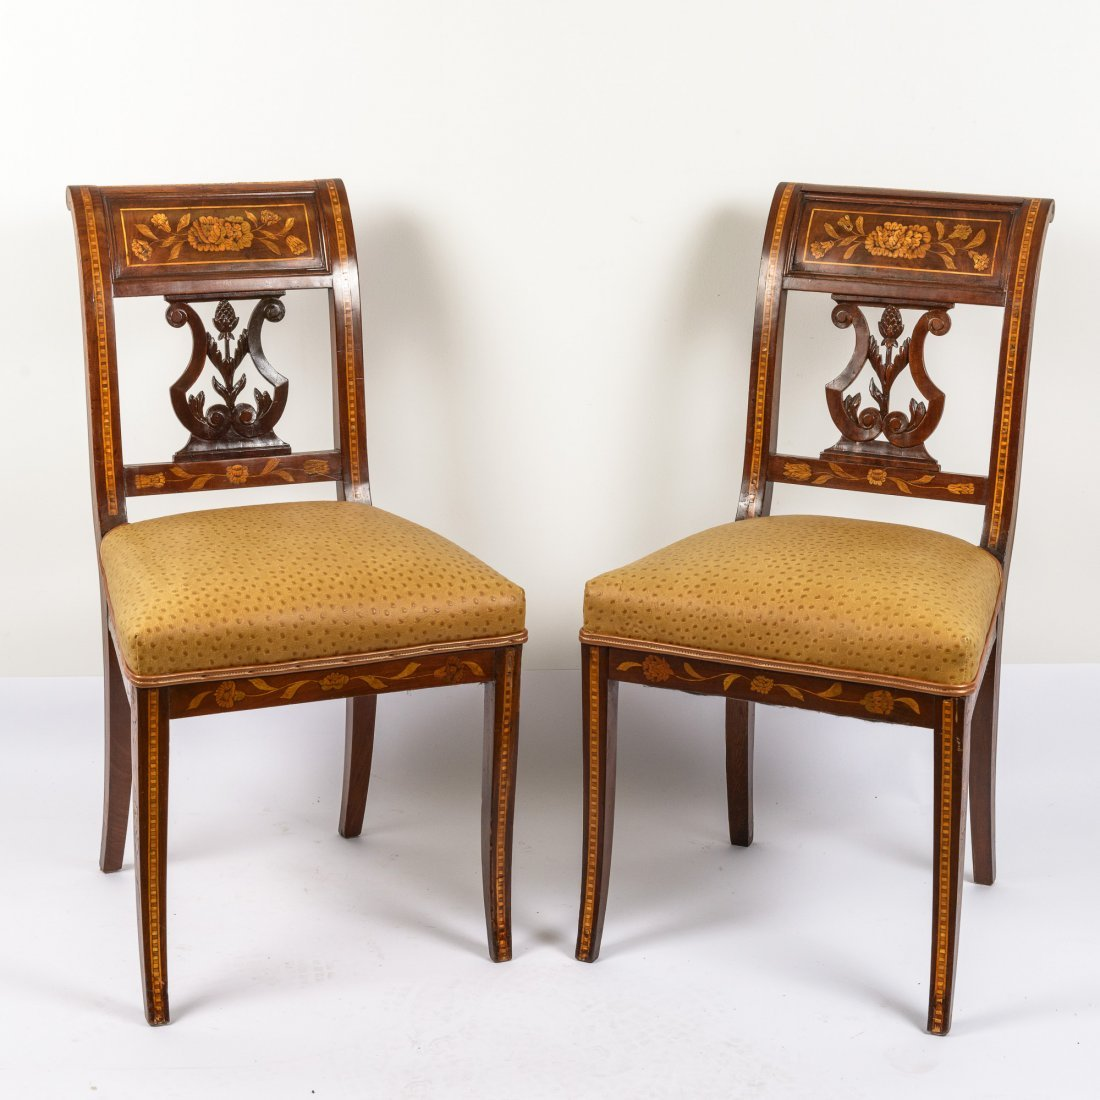 A Pair of Dutch Marquetry Side Chairs c. 1800,